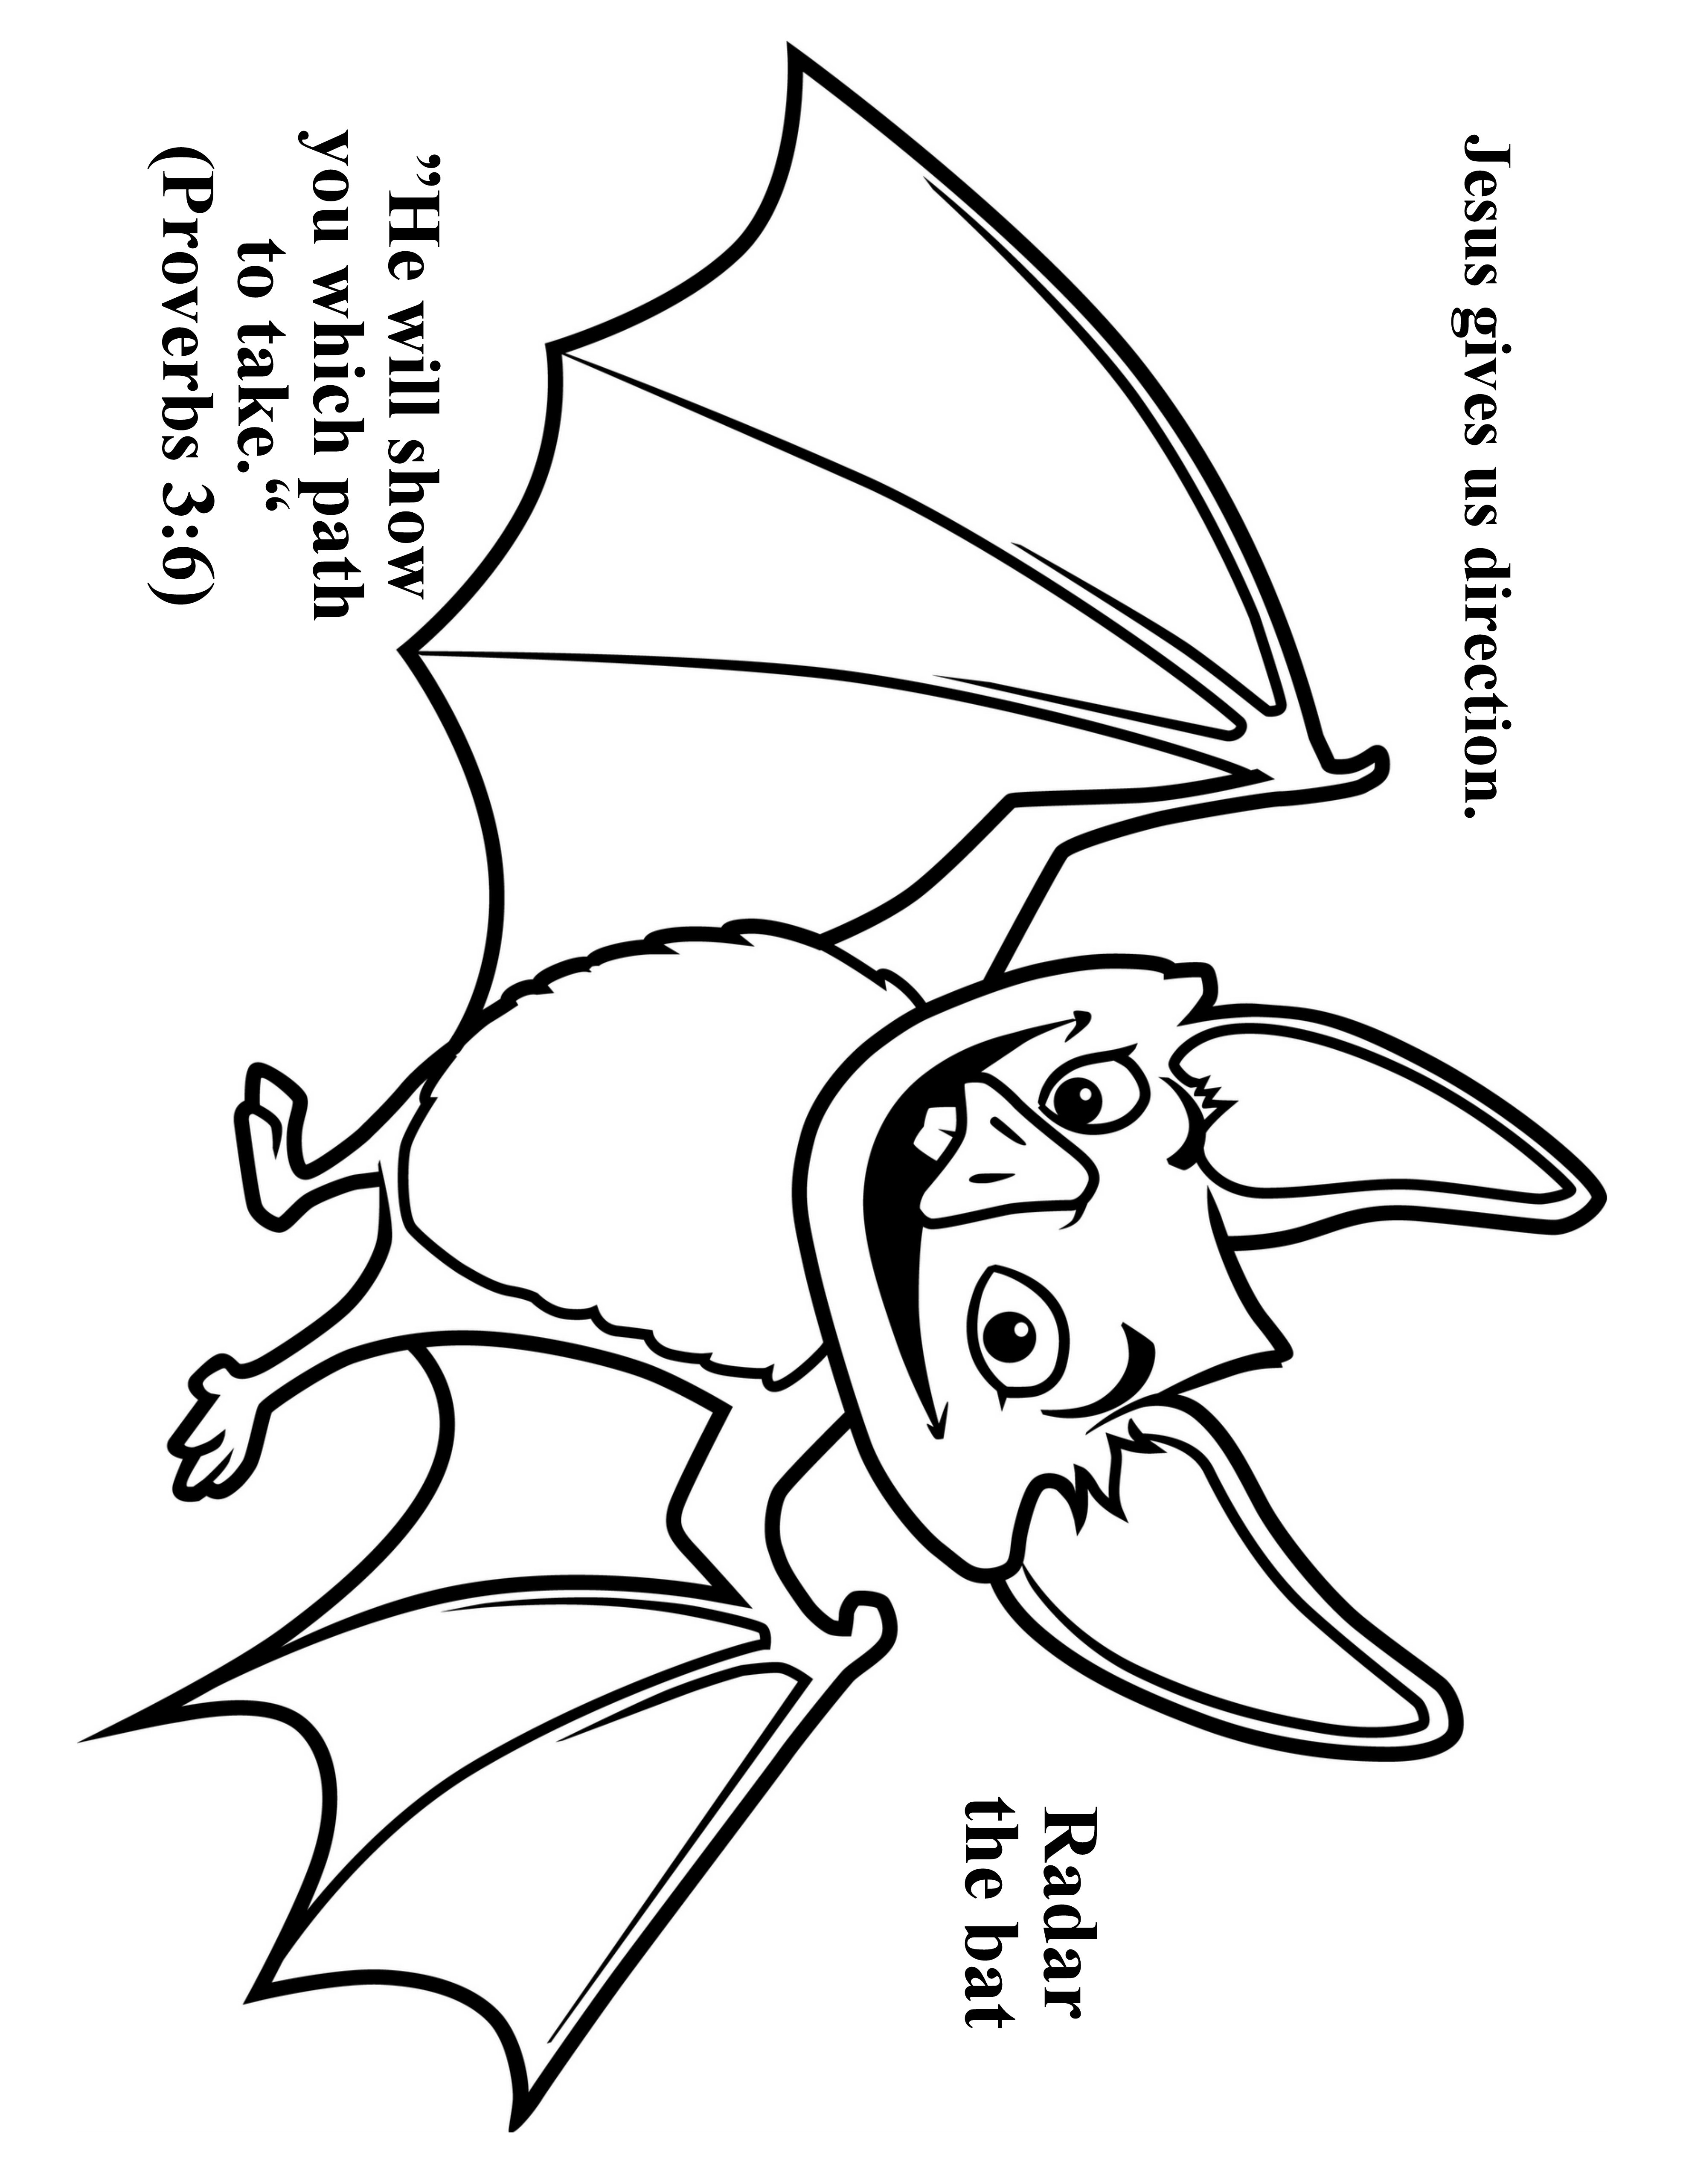 Bat pages preschool best. Cave clipart coloring page graphic freeuse stock